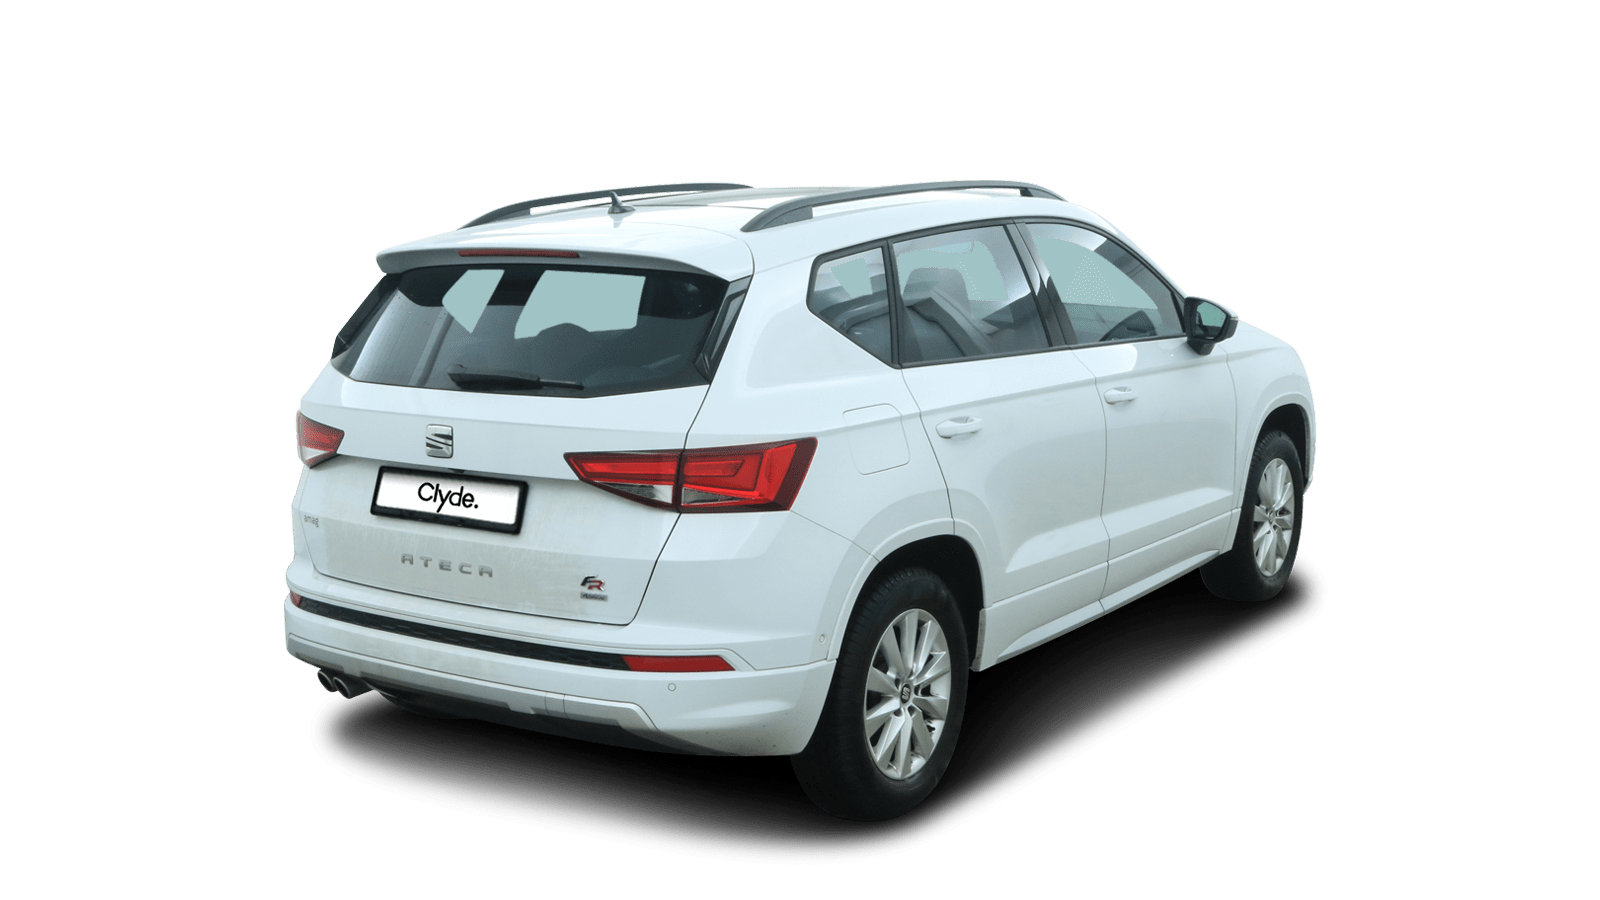 SEAT Ateca White back - Clyde car subscription